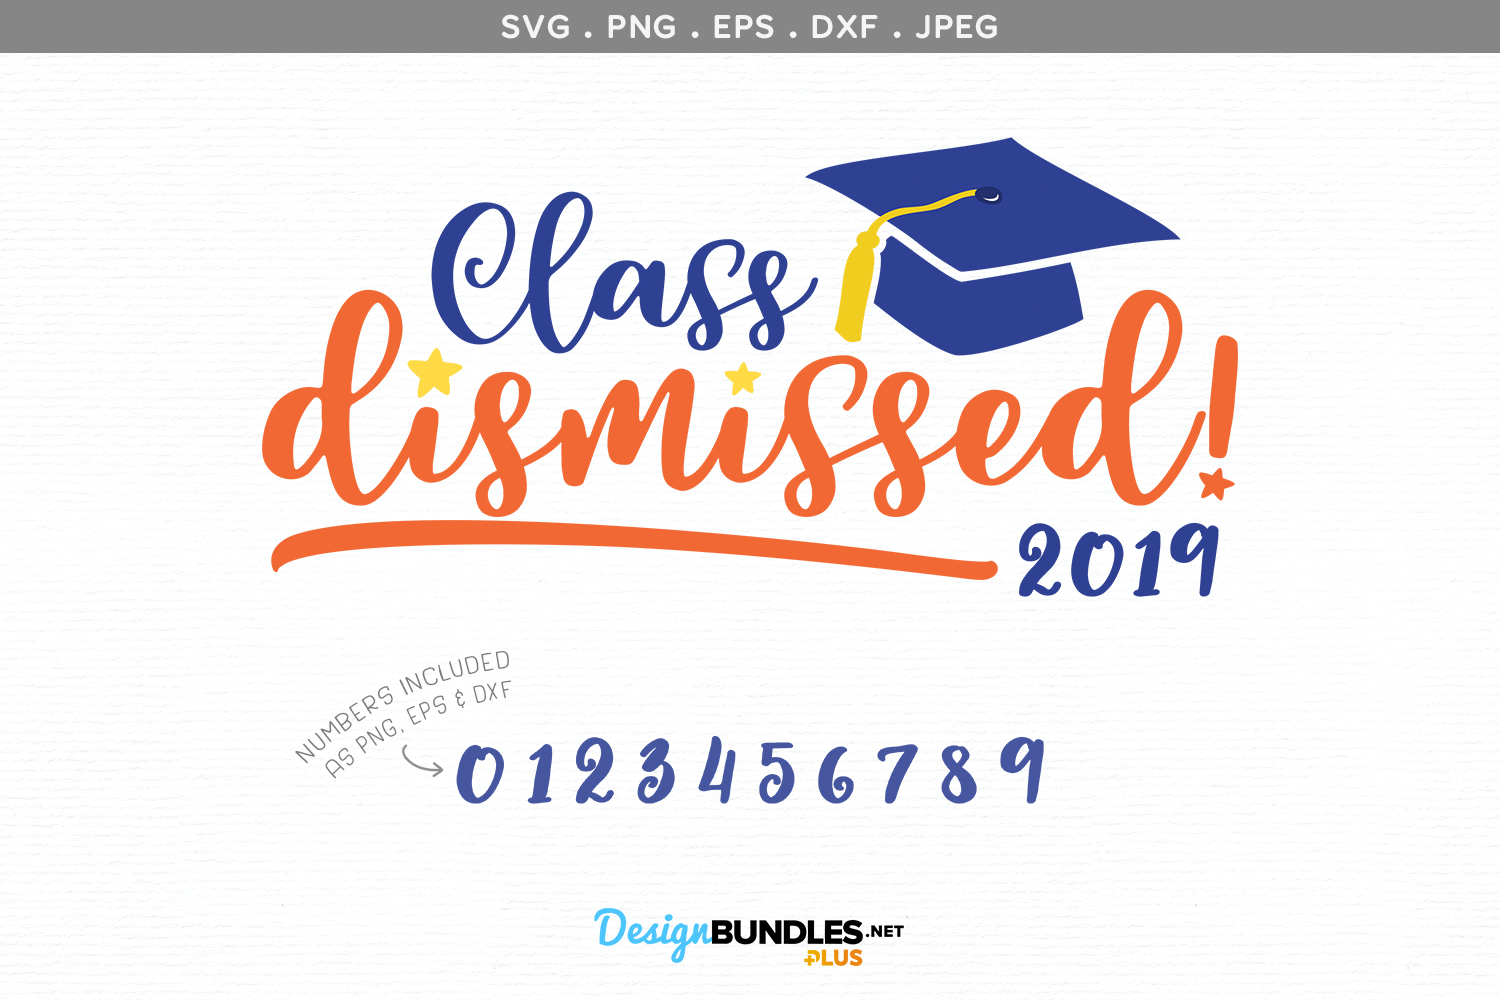 Class Dismissed- svg & printable example image 2